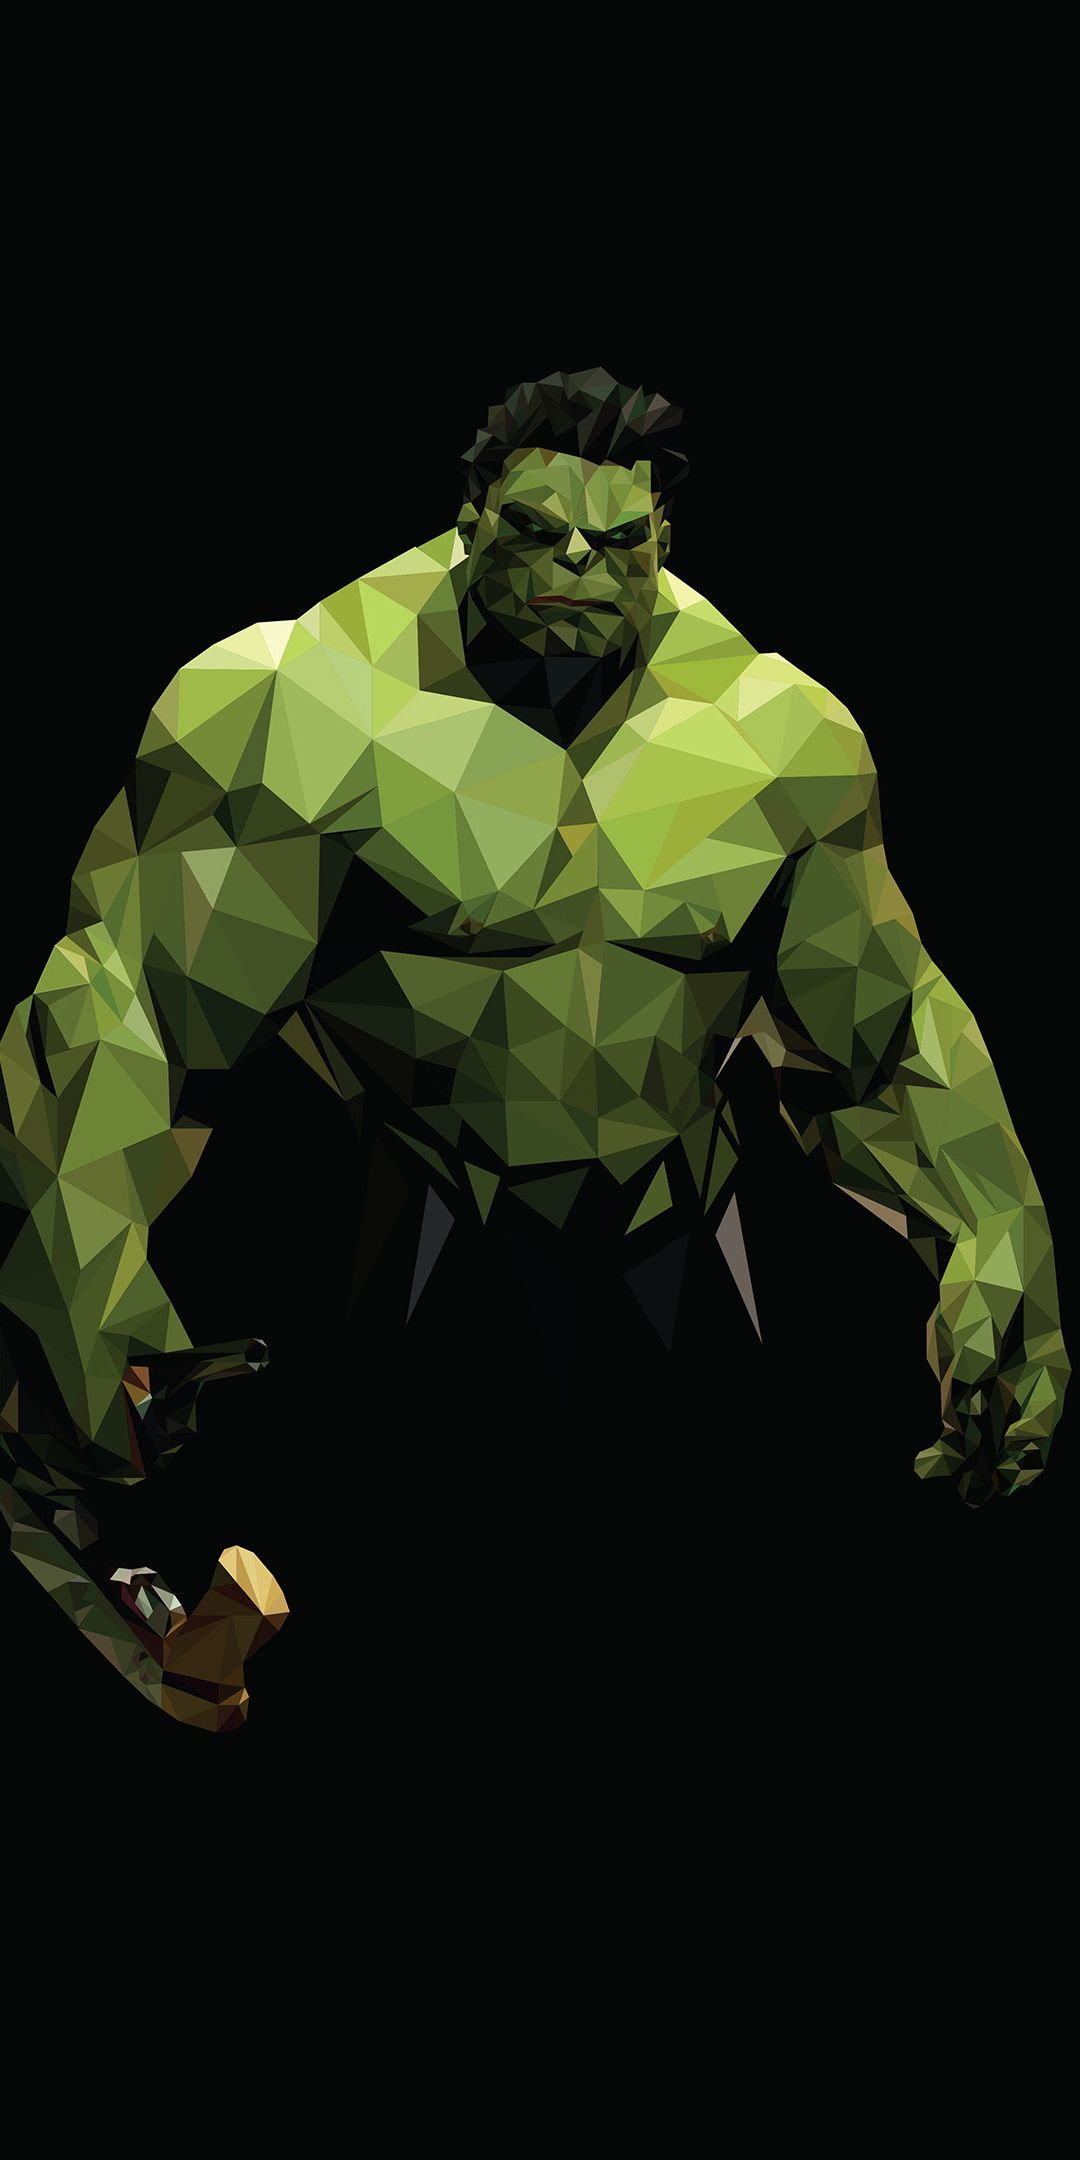 Hulk Superhero Low Poly Art 1080x2160 Wallpaper Marvel Artwork Hulk Art Hulk Marvel